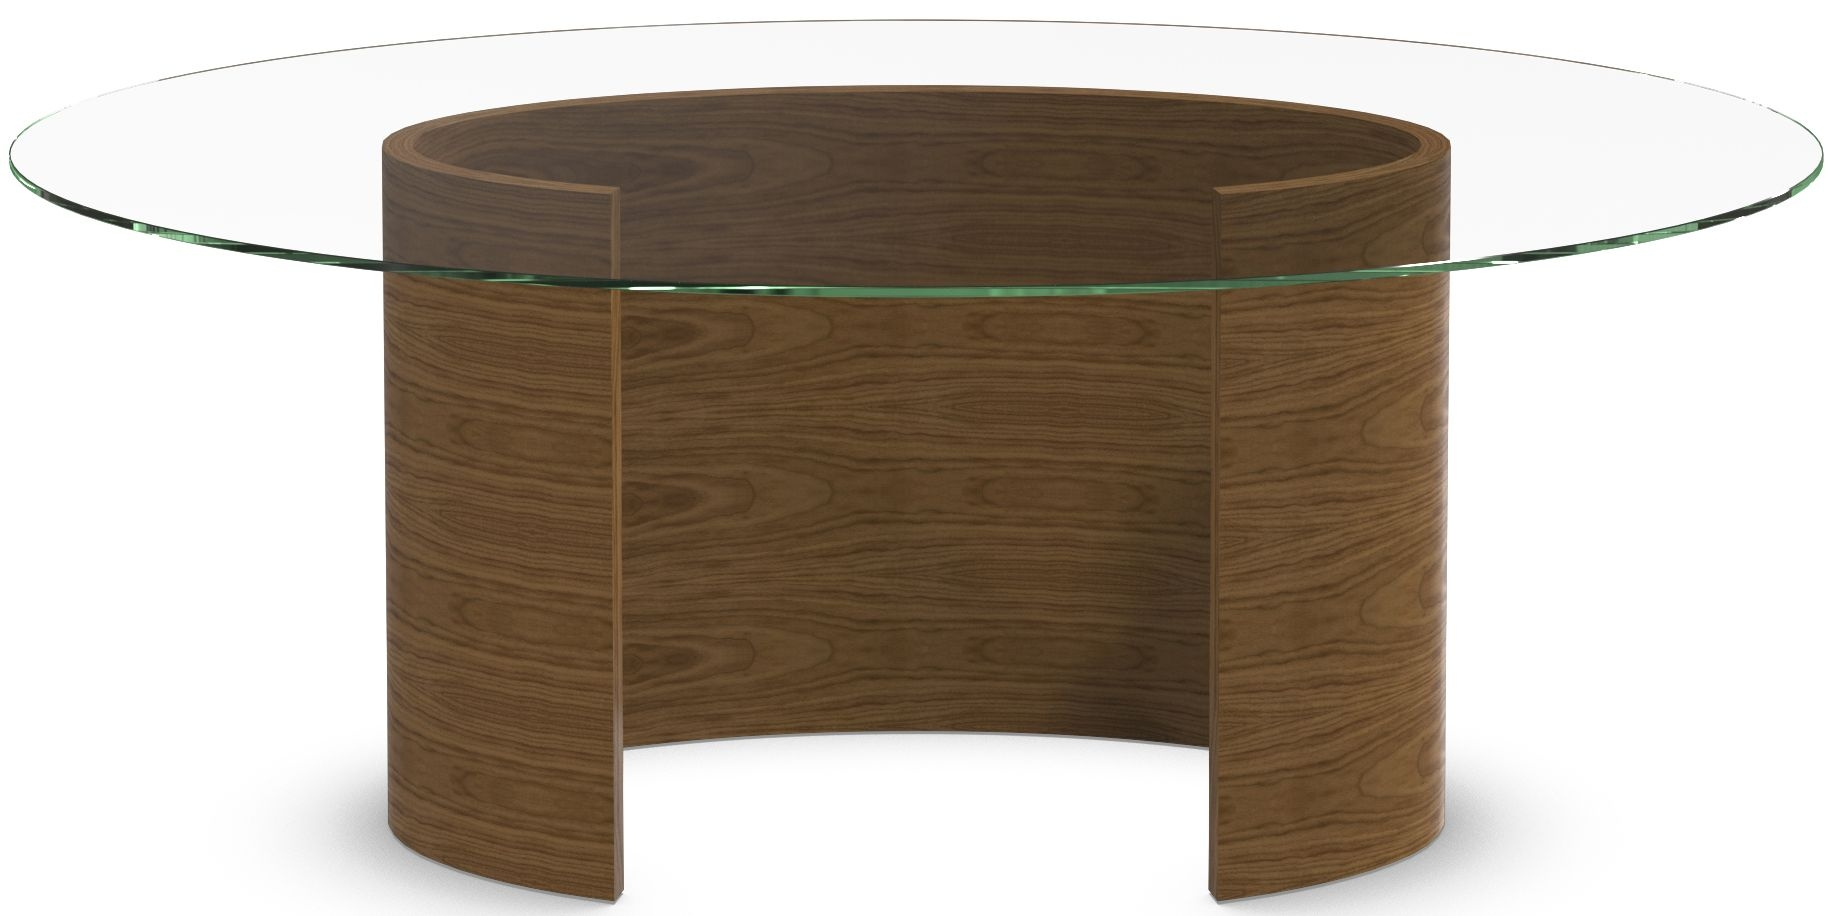 Tom Schneider Ellipse Medium Glass Top Dining Table